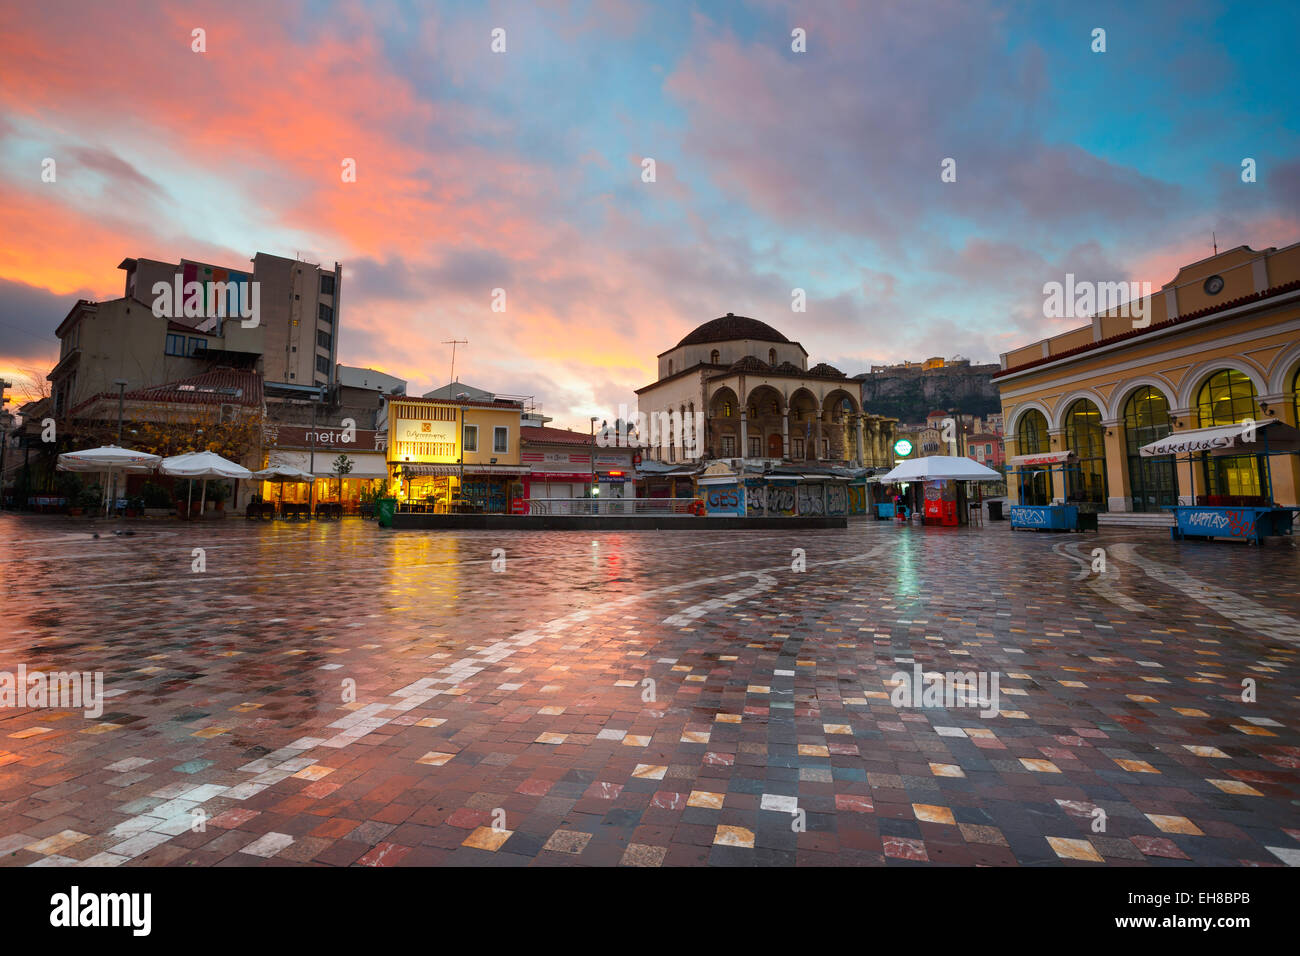 Monastiraki square early in the morning, Athens, Greece - Stock Image